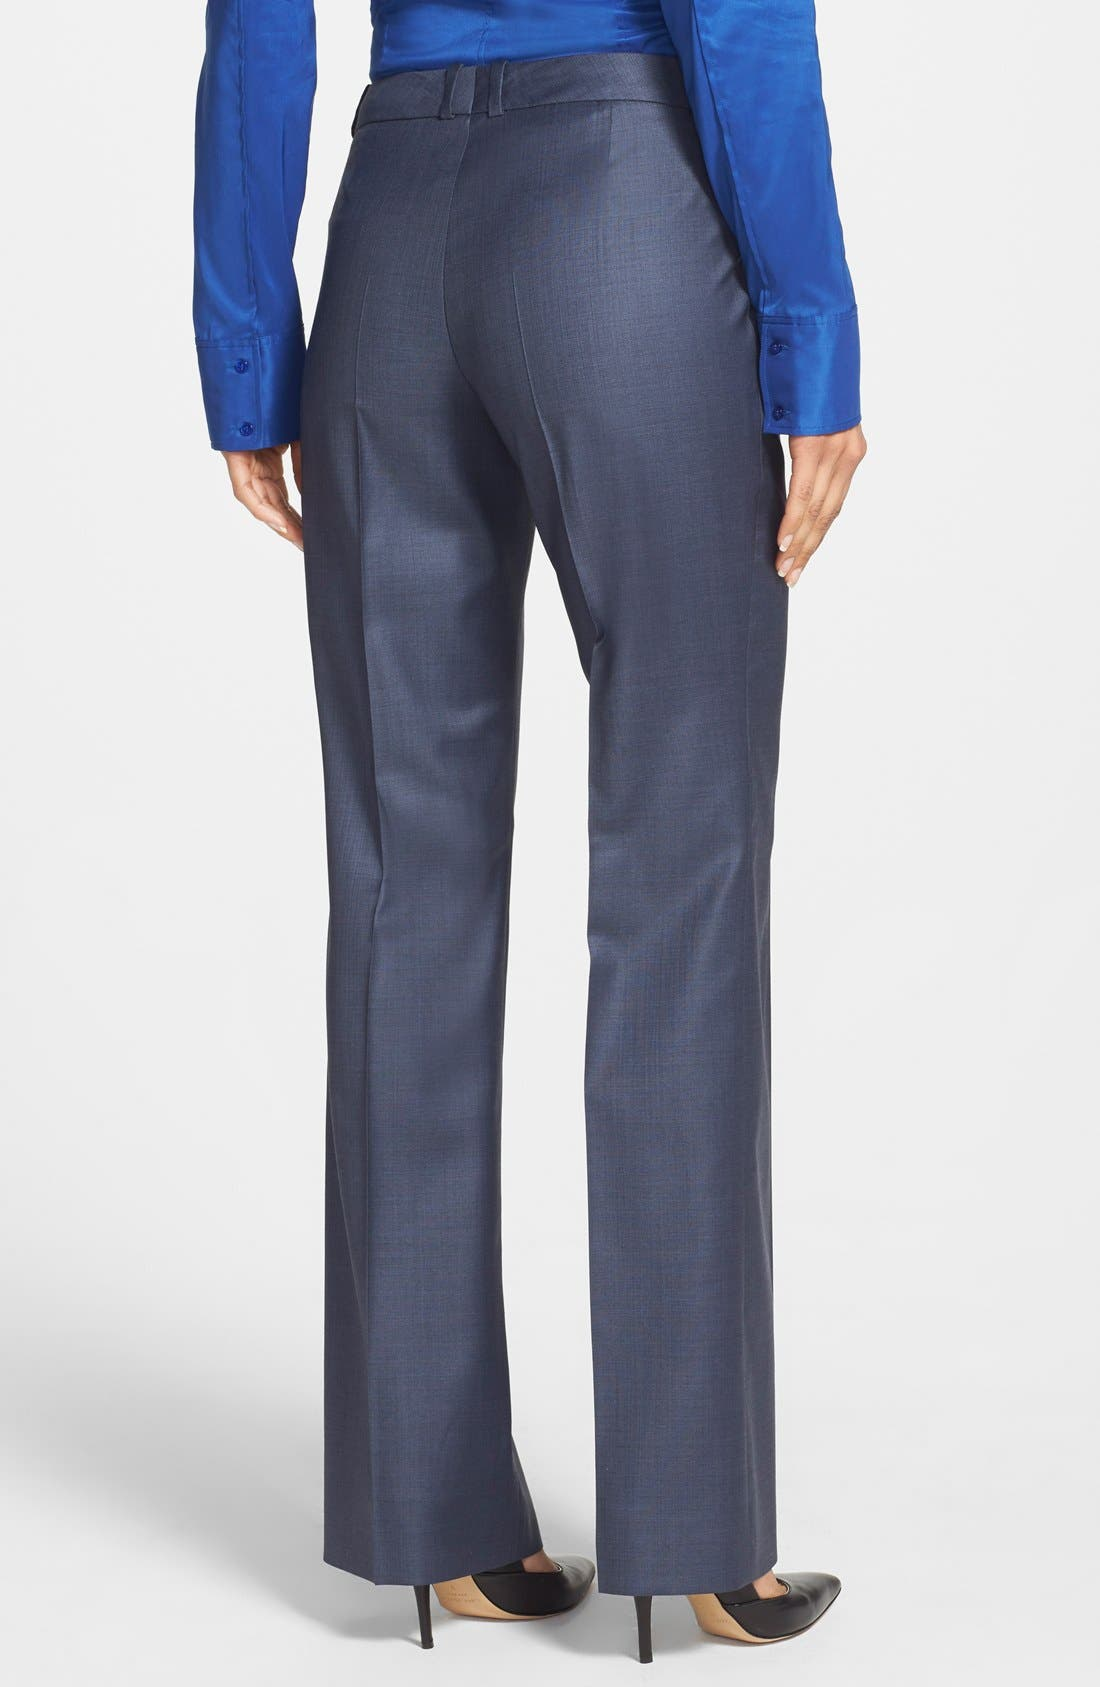 'Temuna' Wool Blend Suiting Trousers,                             Alternate thumbnail 2, color,                             Electric Blue Fantasy Melange